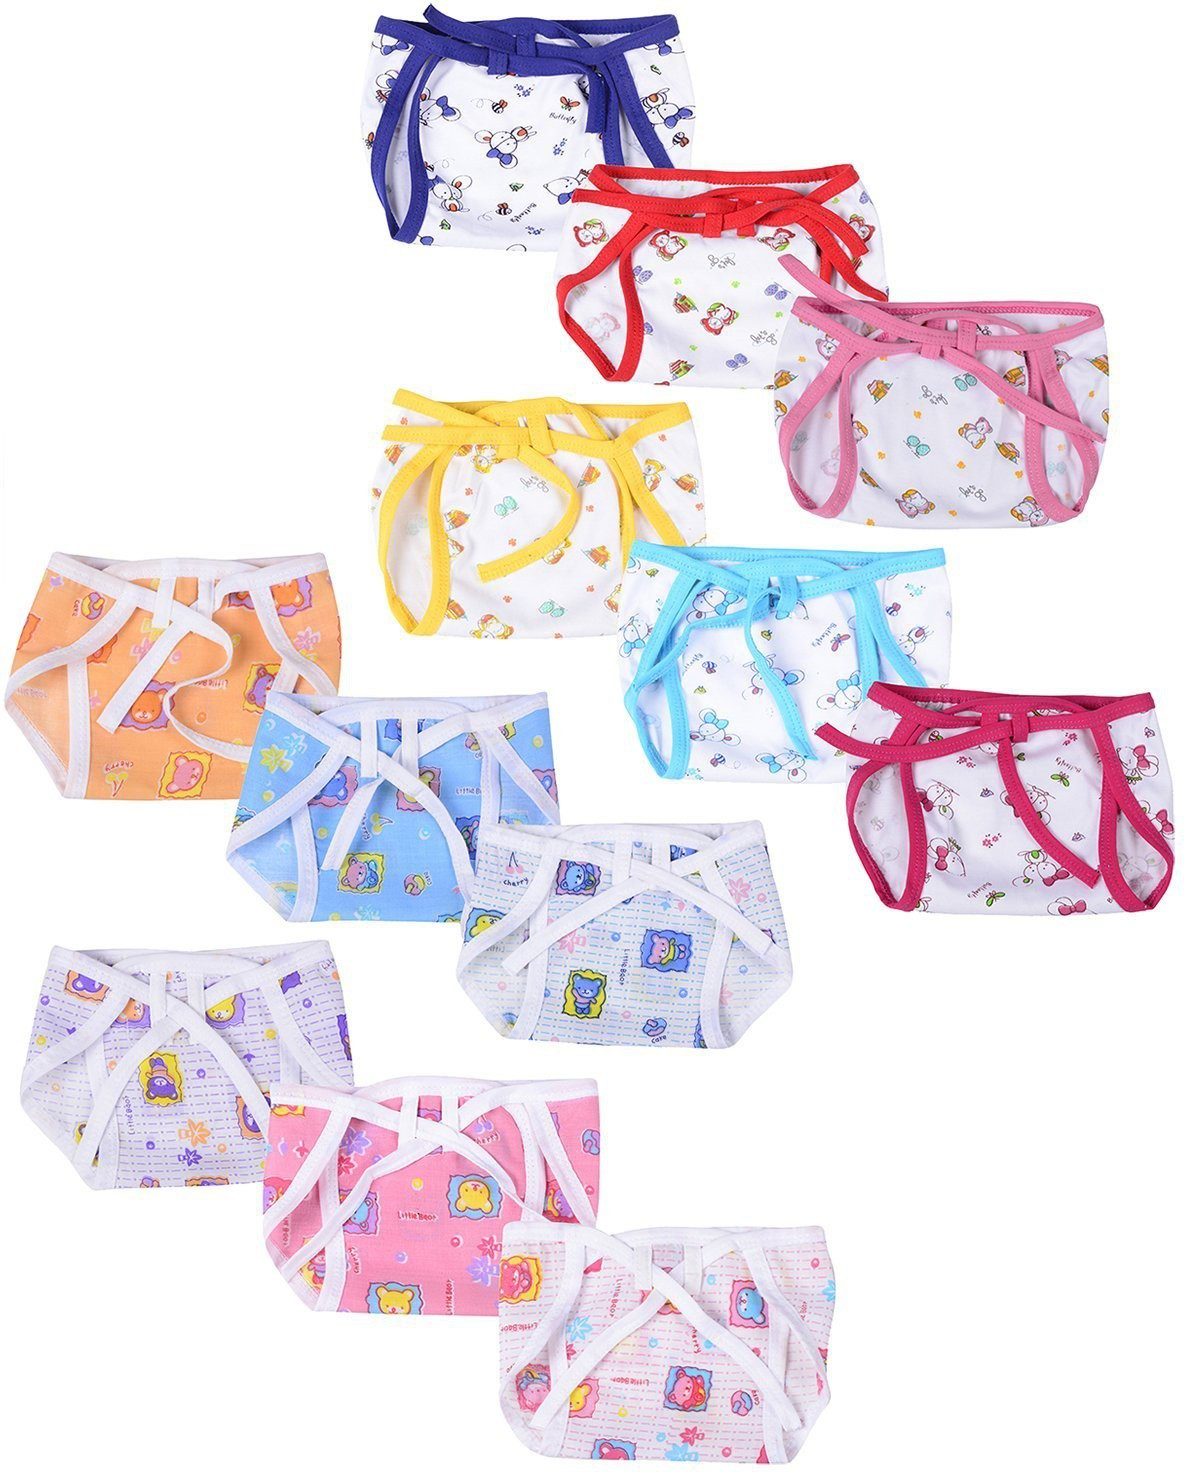 90388772f62 Firststep Firststep new born baby cute print cloth nappies for your little  one s(0-